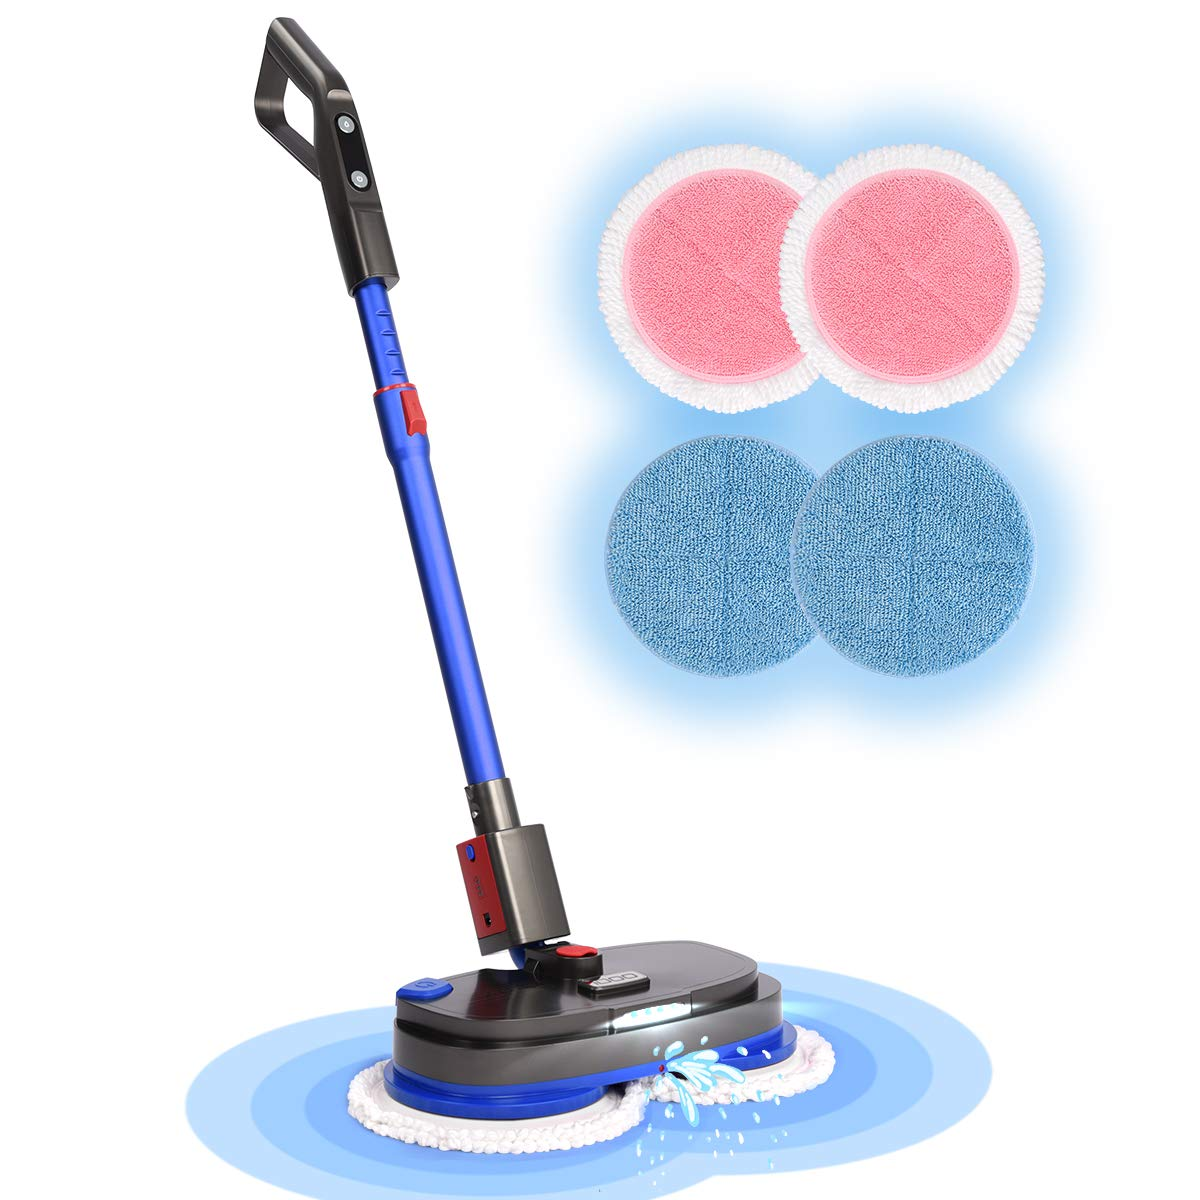 Electric Mop, iDOO Cordless Electric Spinner and Waxer, Powerful Floor Cleaner with Dual Spin, Sweeper and Scrubber with LED Headlight for Hard Wood, Marble, Tile and Laminate Floor, Super Quiet